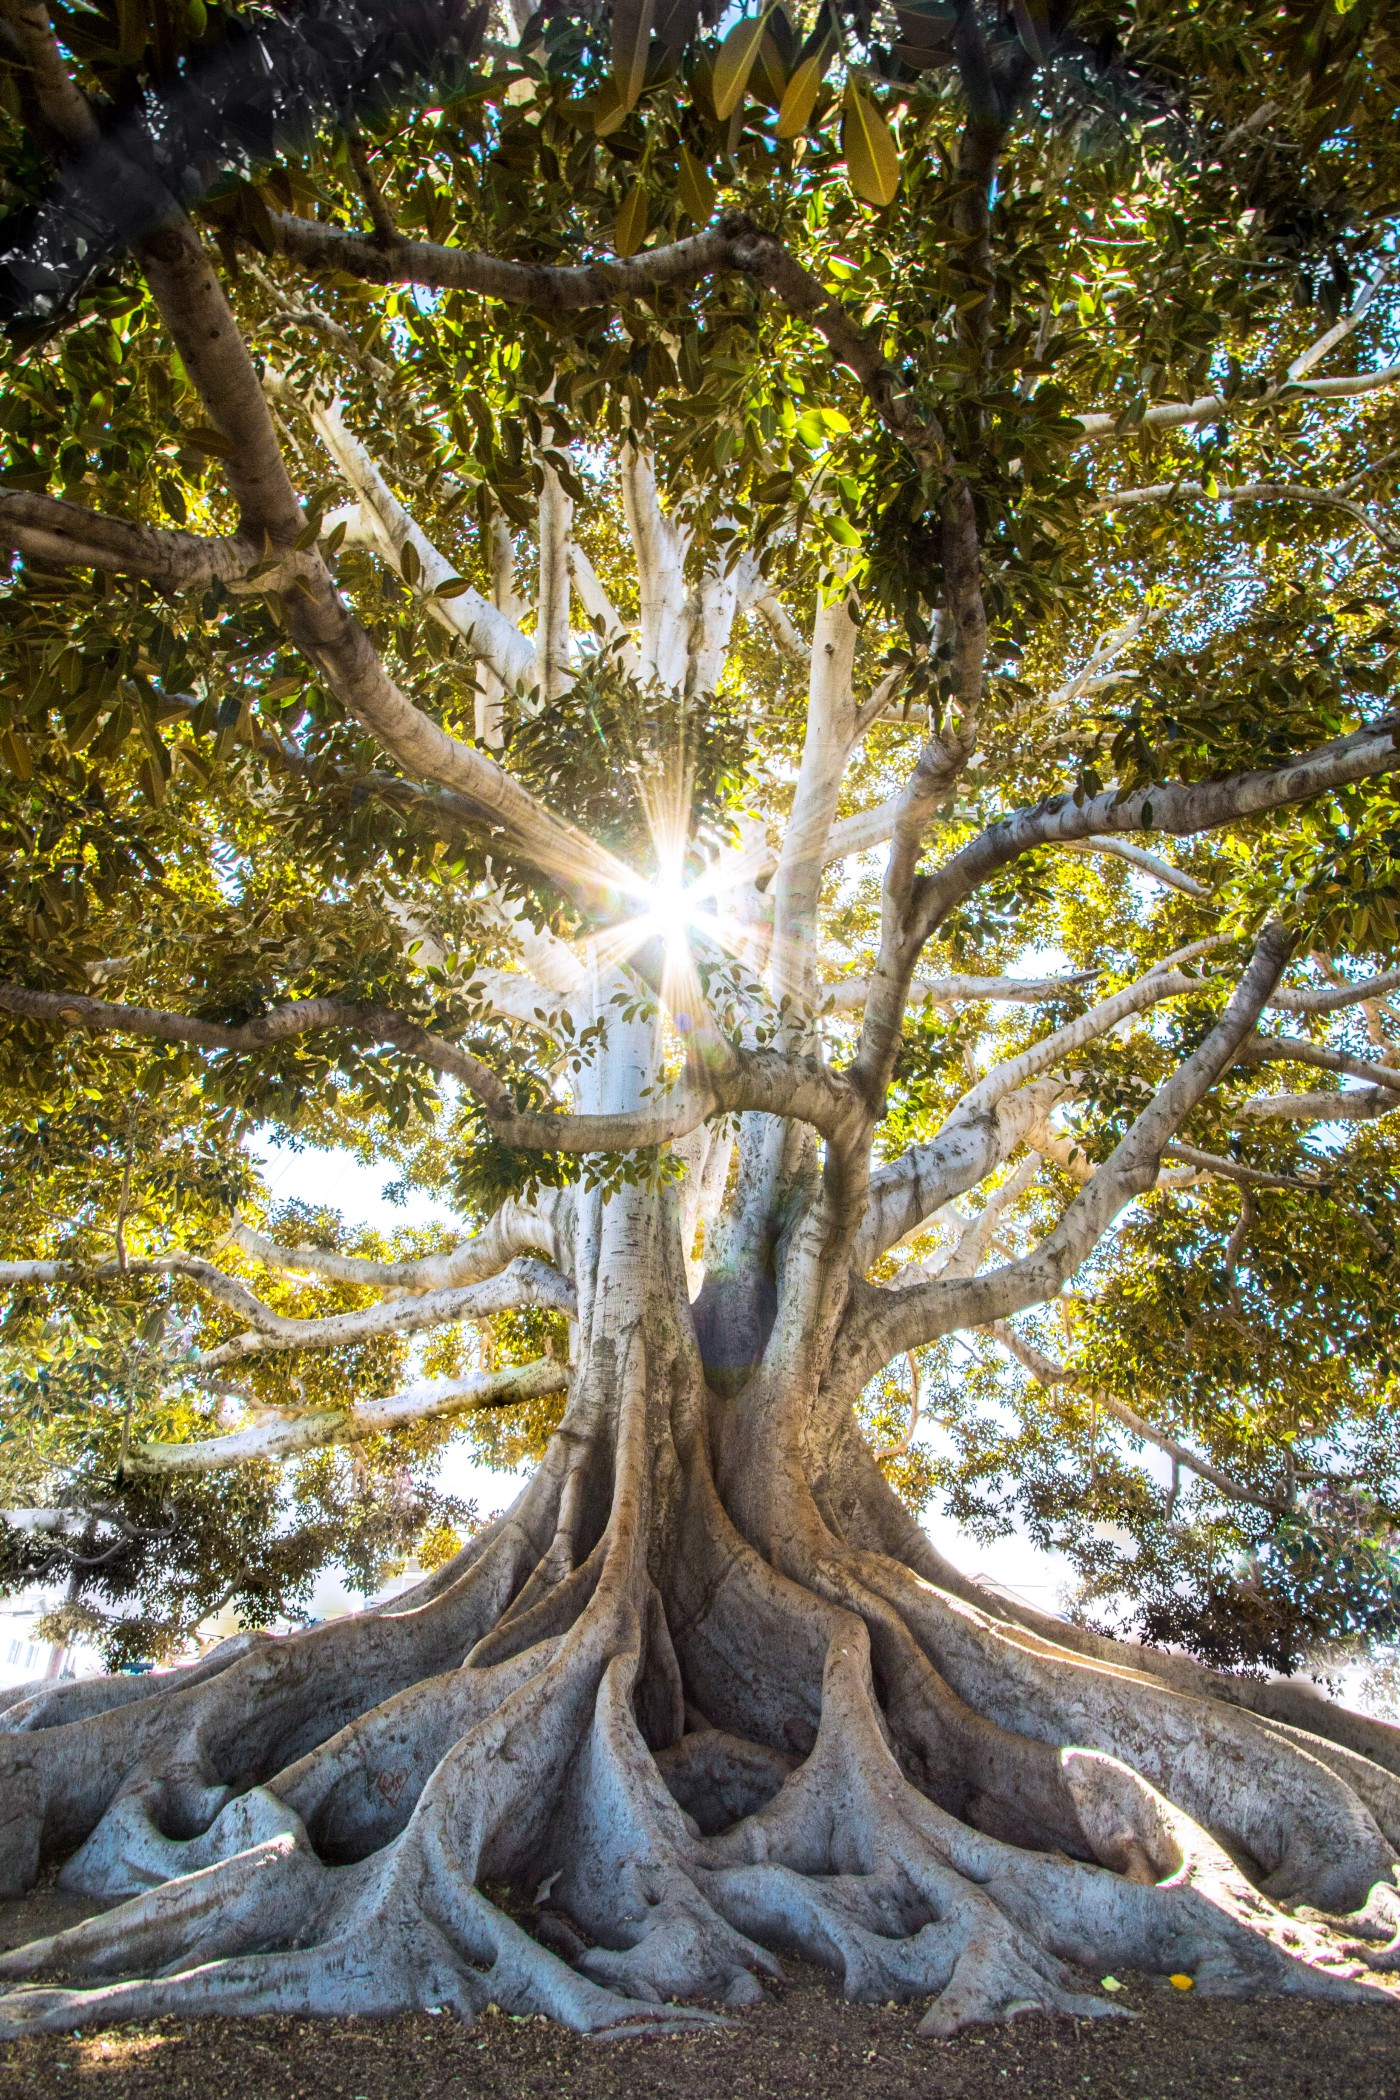 A massive tree with sunlight shining through its leaves and branches